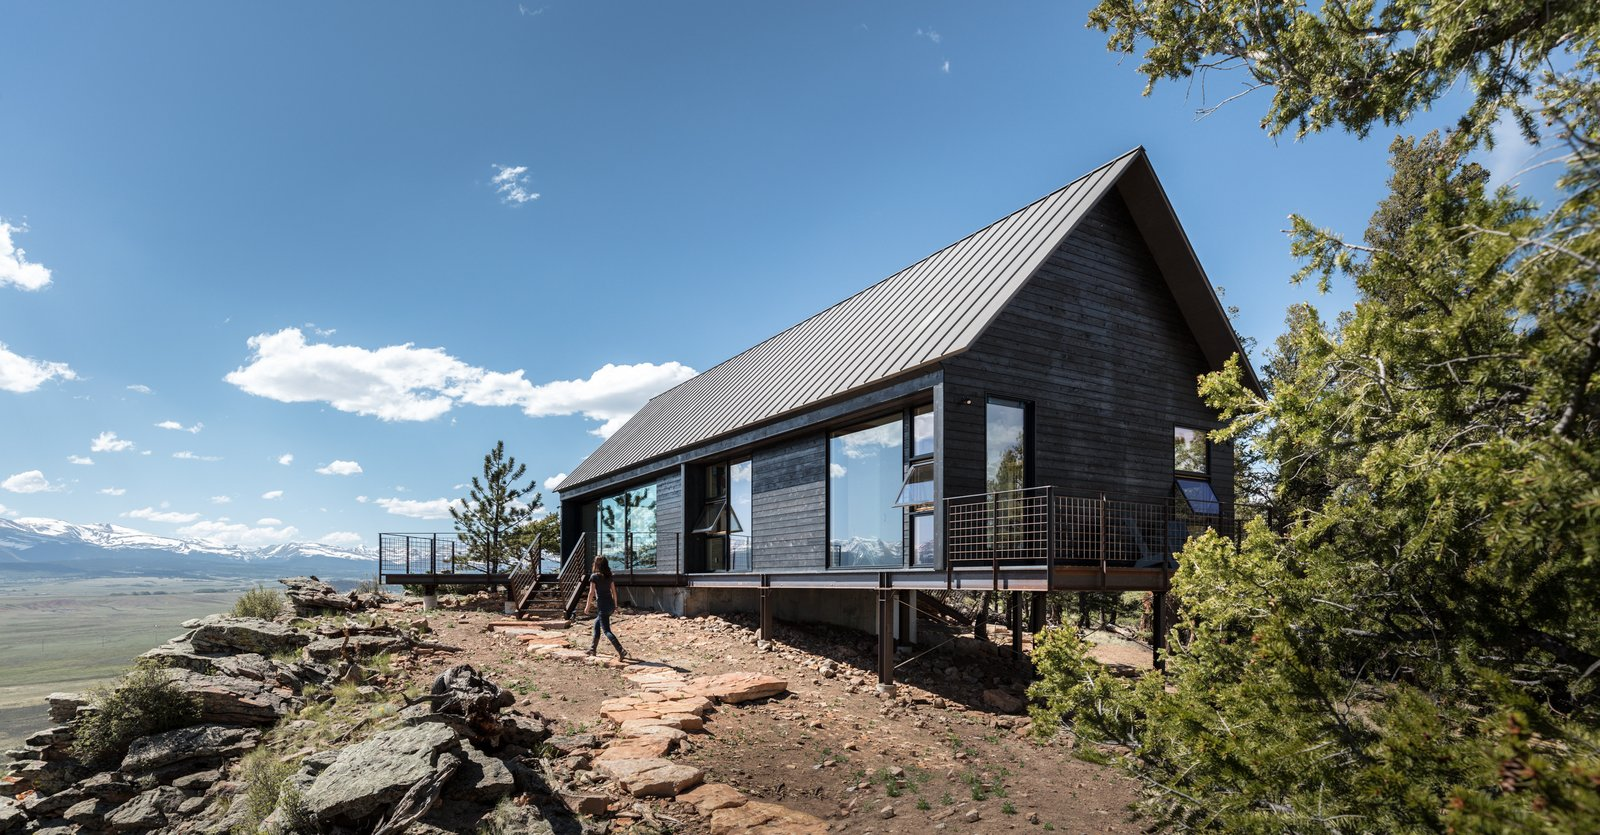 Outdoor  Big Cabin | Little Cabin by Renée del Gaudio Architecture from Two Connected Cabins Make Up This Spectacular Retreat in Colorado